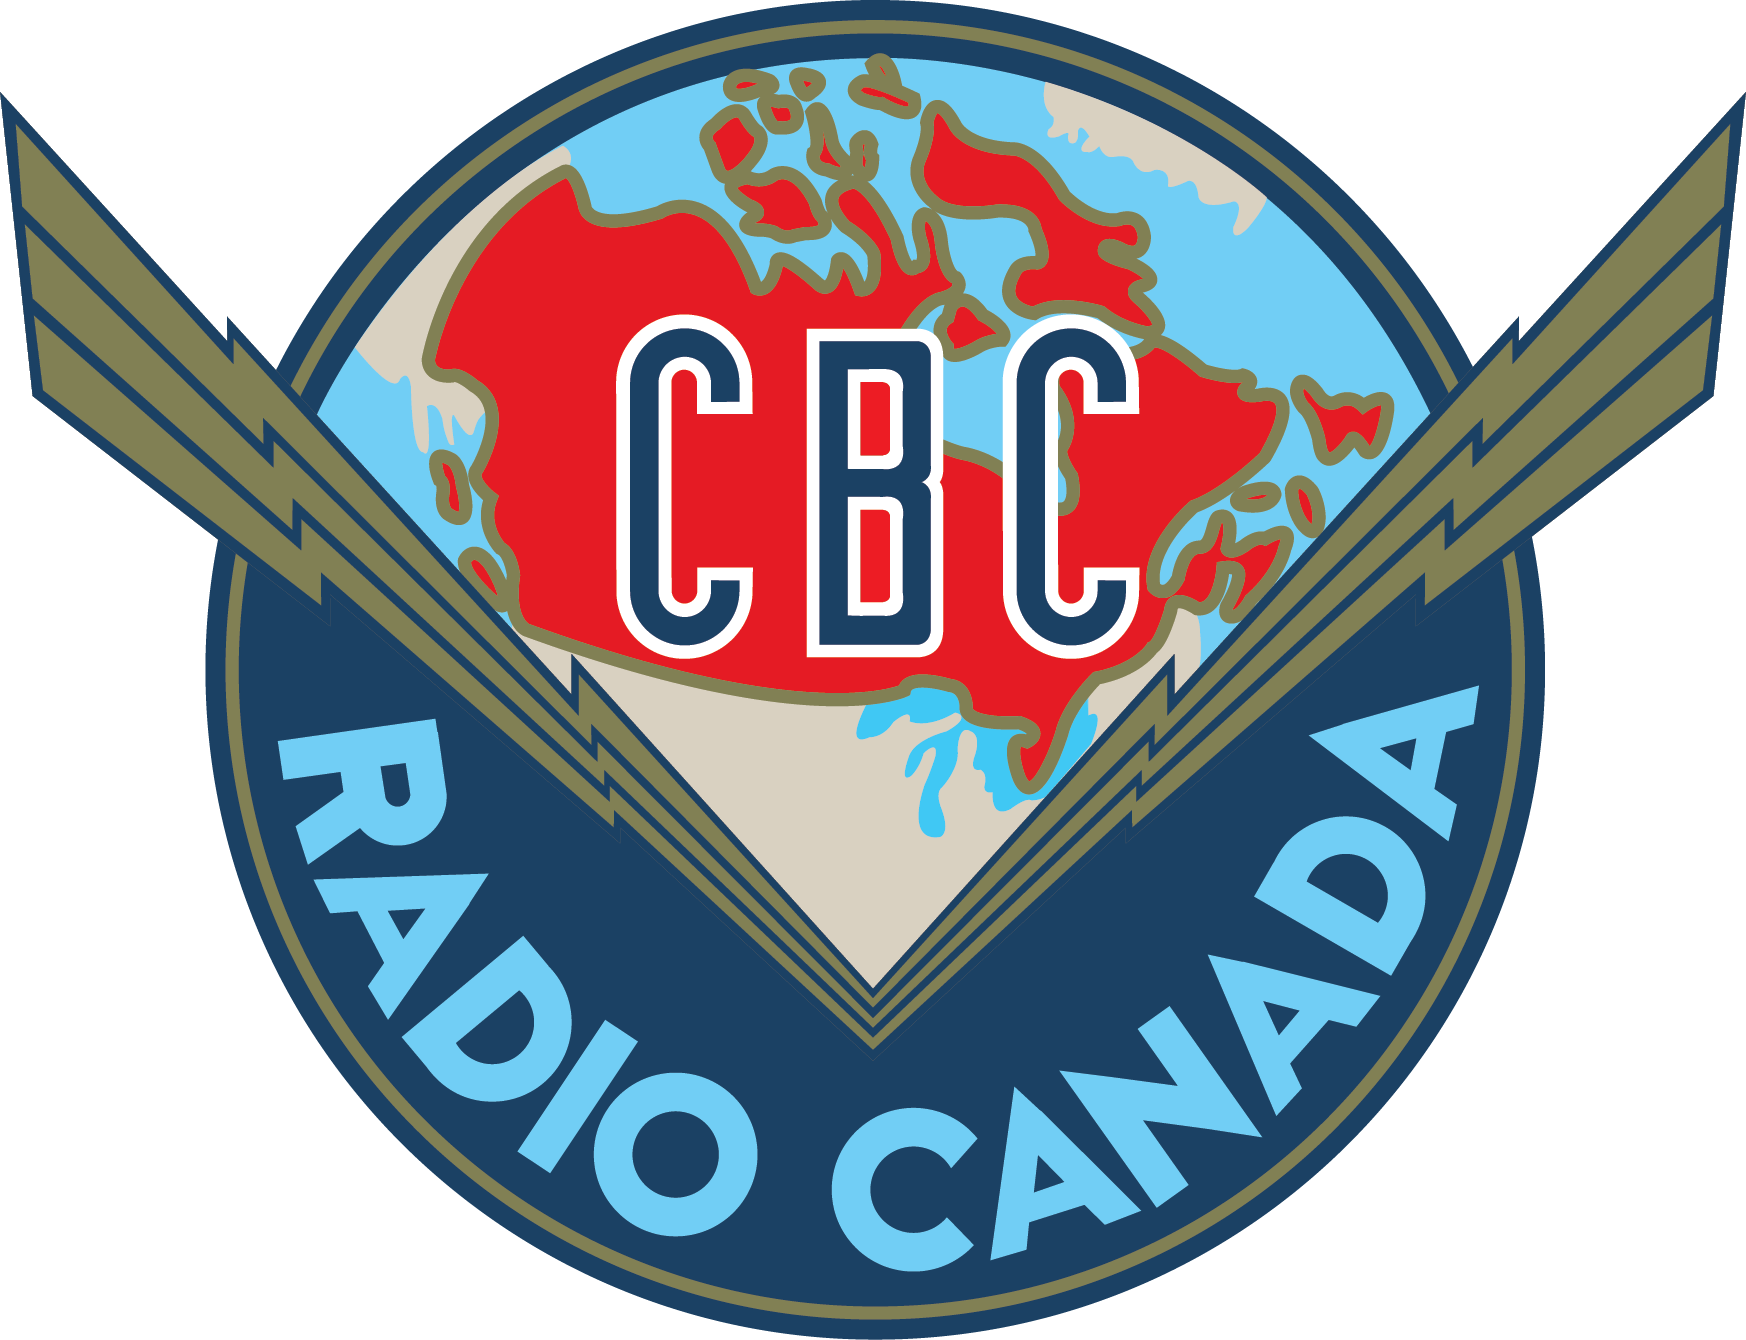 CBC radio logo - By Hortence Binette [Public domain], via Wikimedia Commons